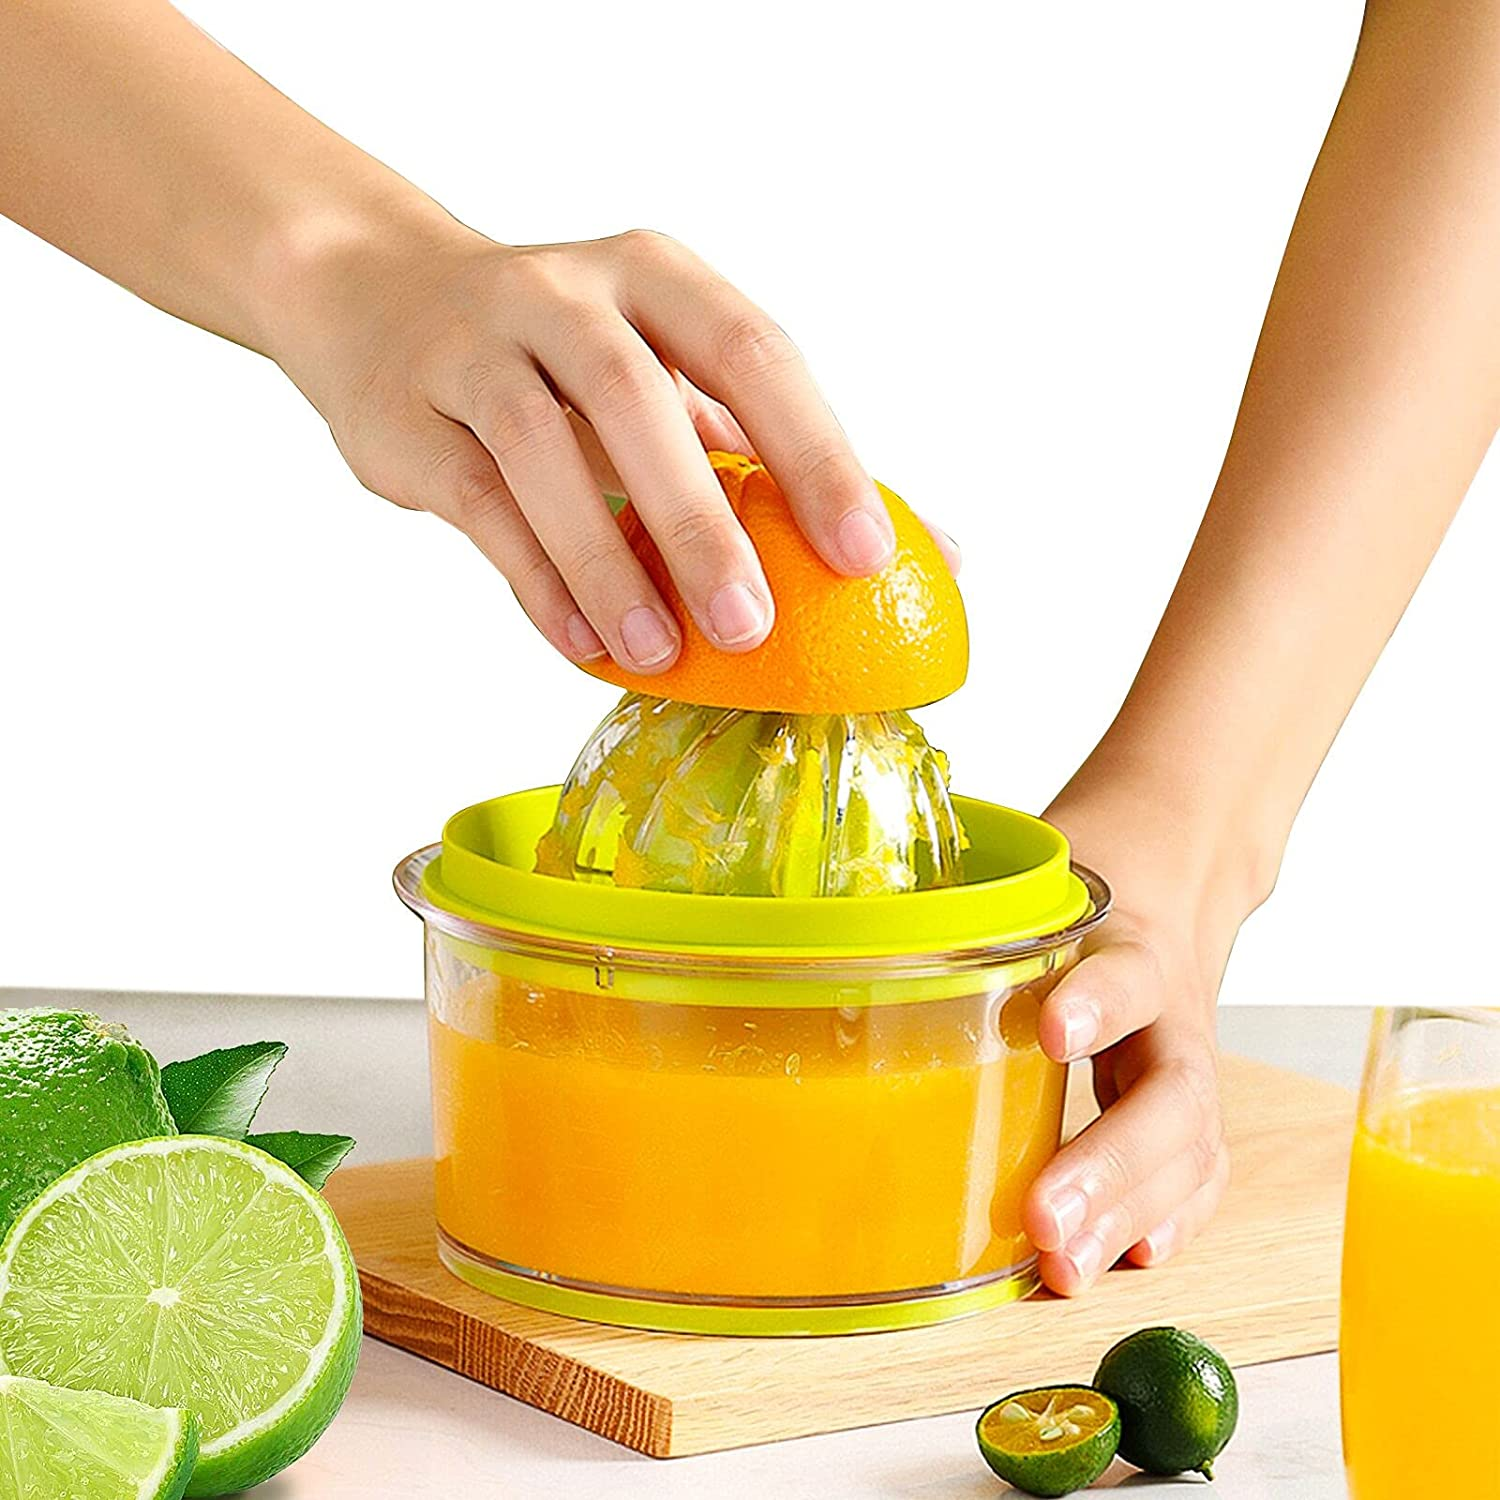 Manual orange Juicer Lemon Squeezer Citrus Juicers Extractor with Built-in Measuring Cup and Strainer, Juicing Tool 16 oz Capacity